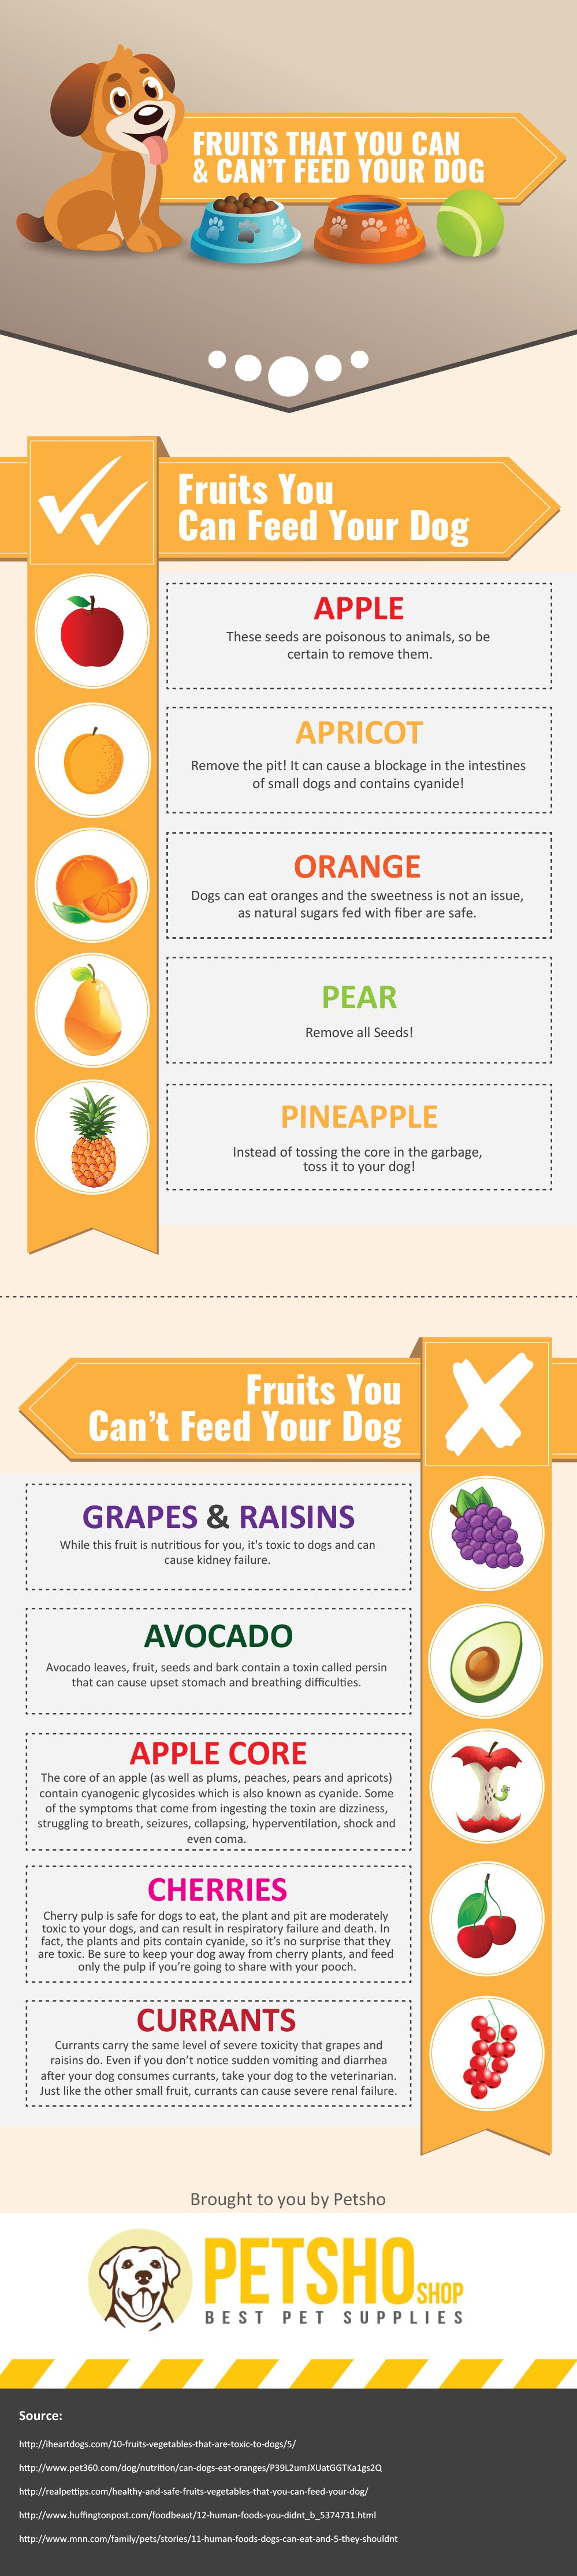 Should Dogs Eat Fruit